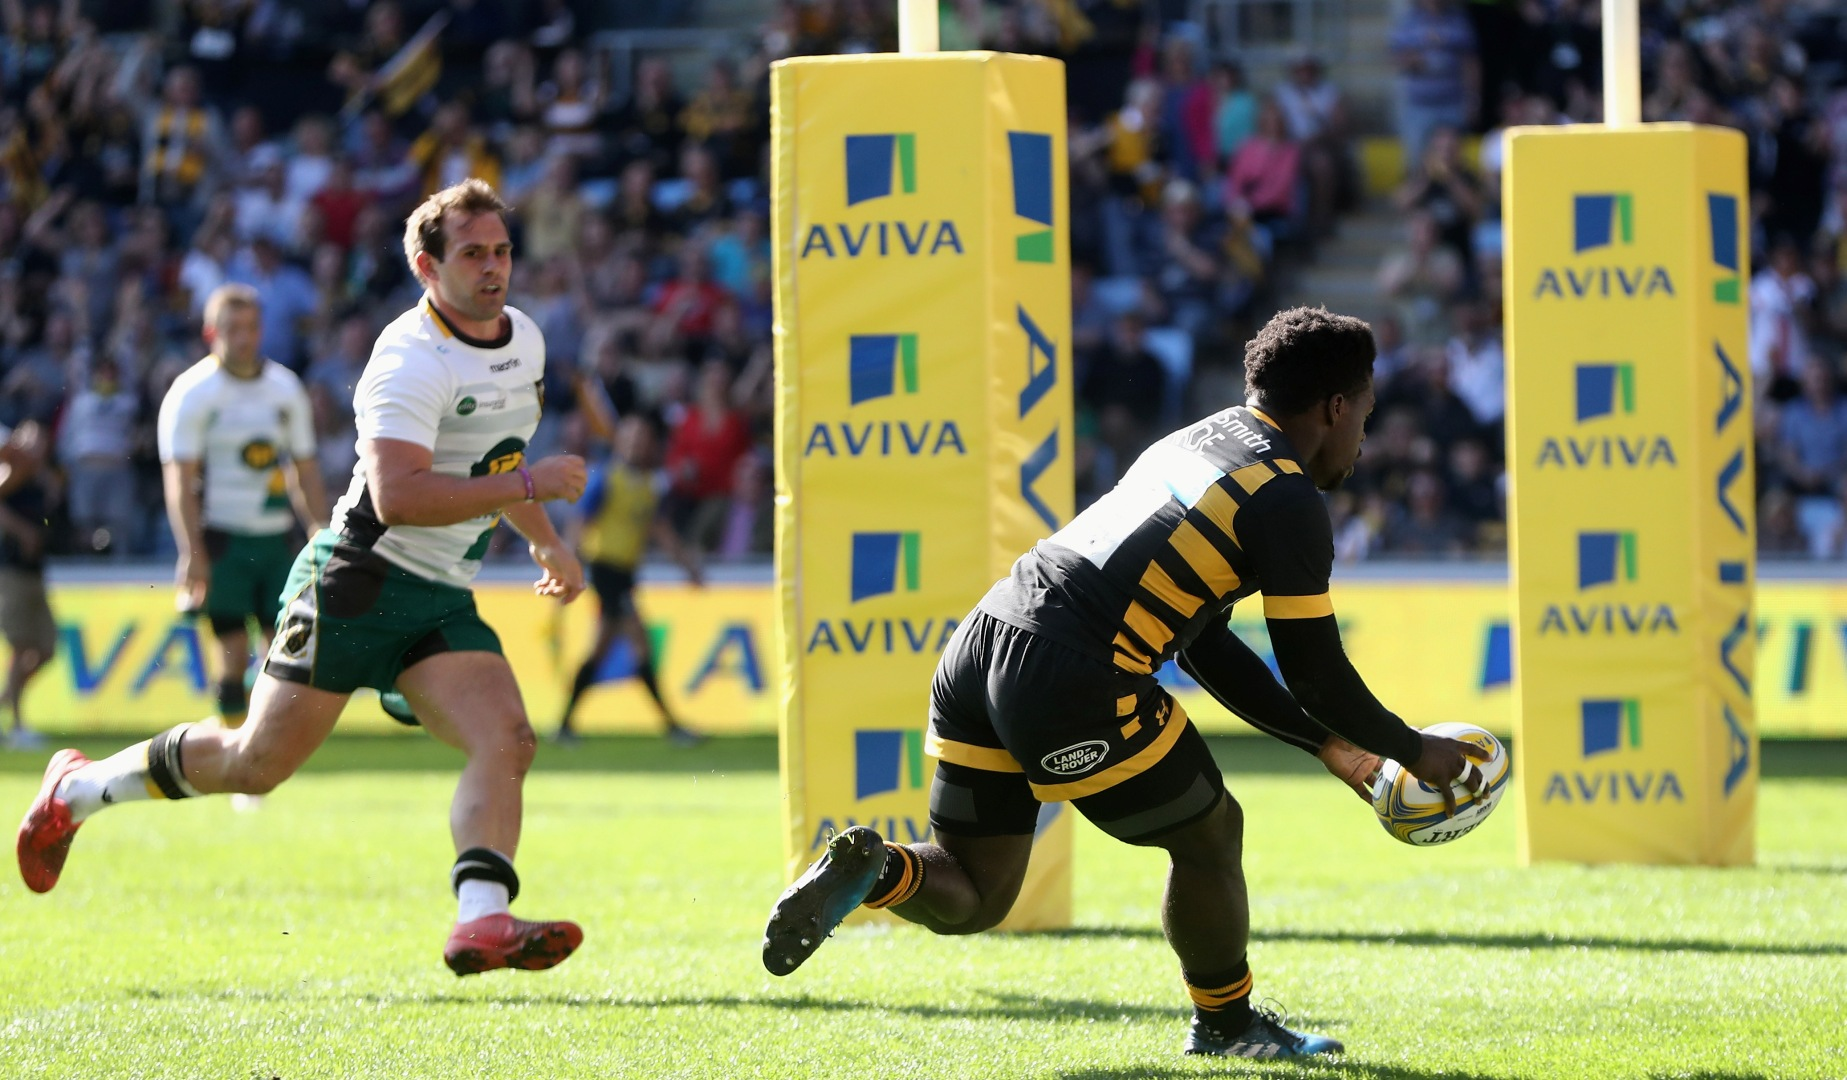 LionsWatch: Wade and Daly bag tries as Wasps win late